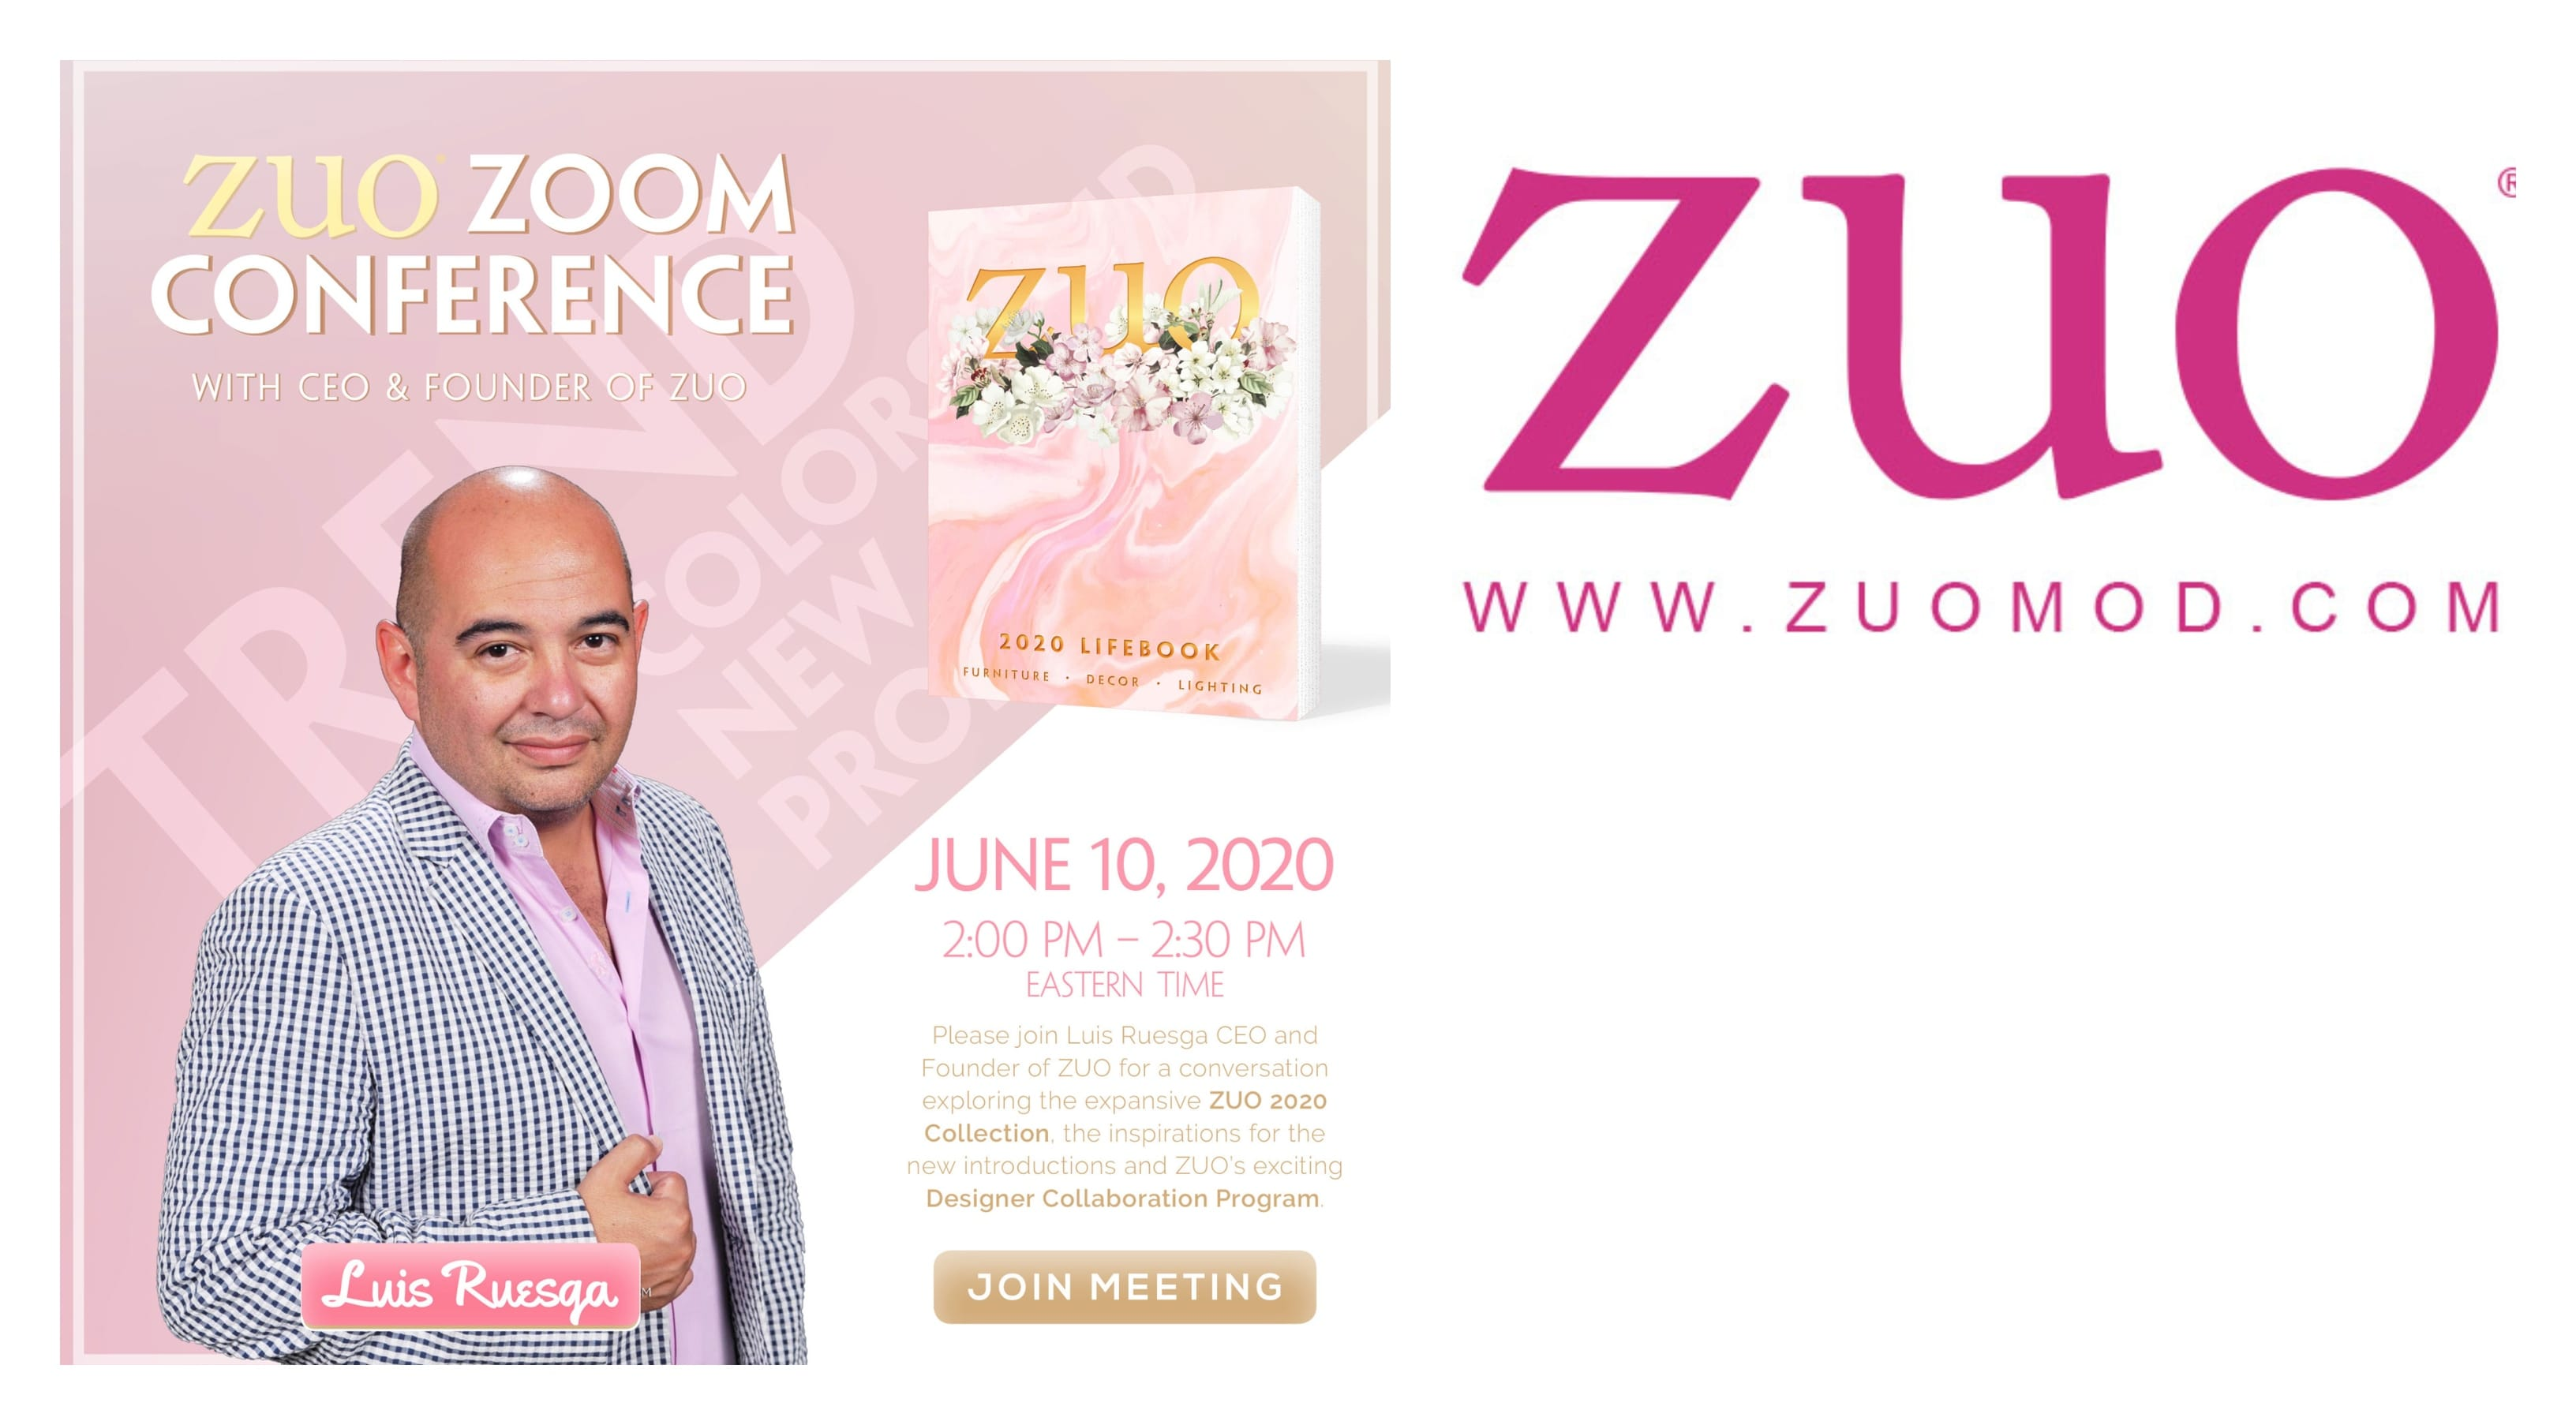 ZUO in partnership with DesignerInc invites the design community to see what's new